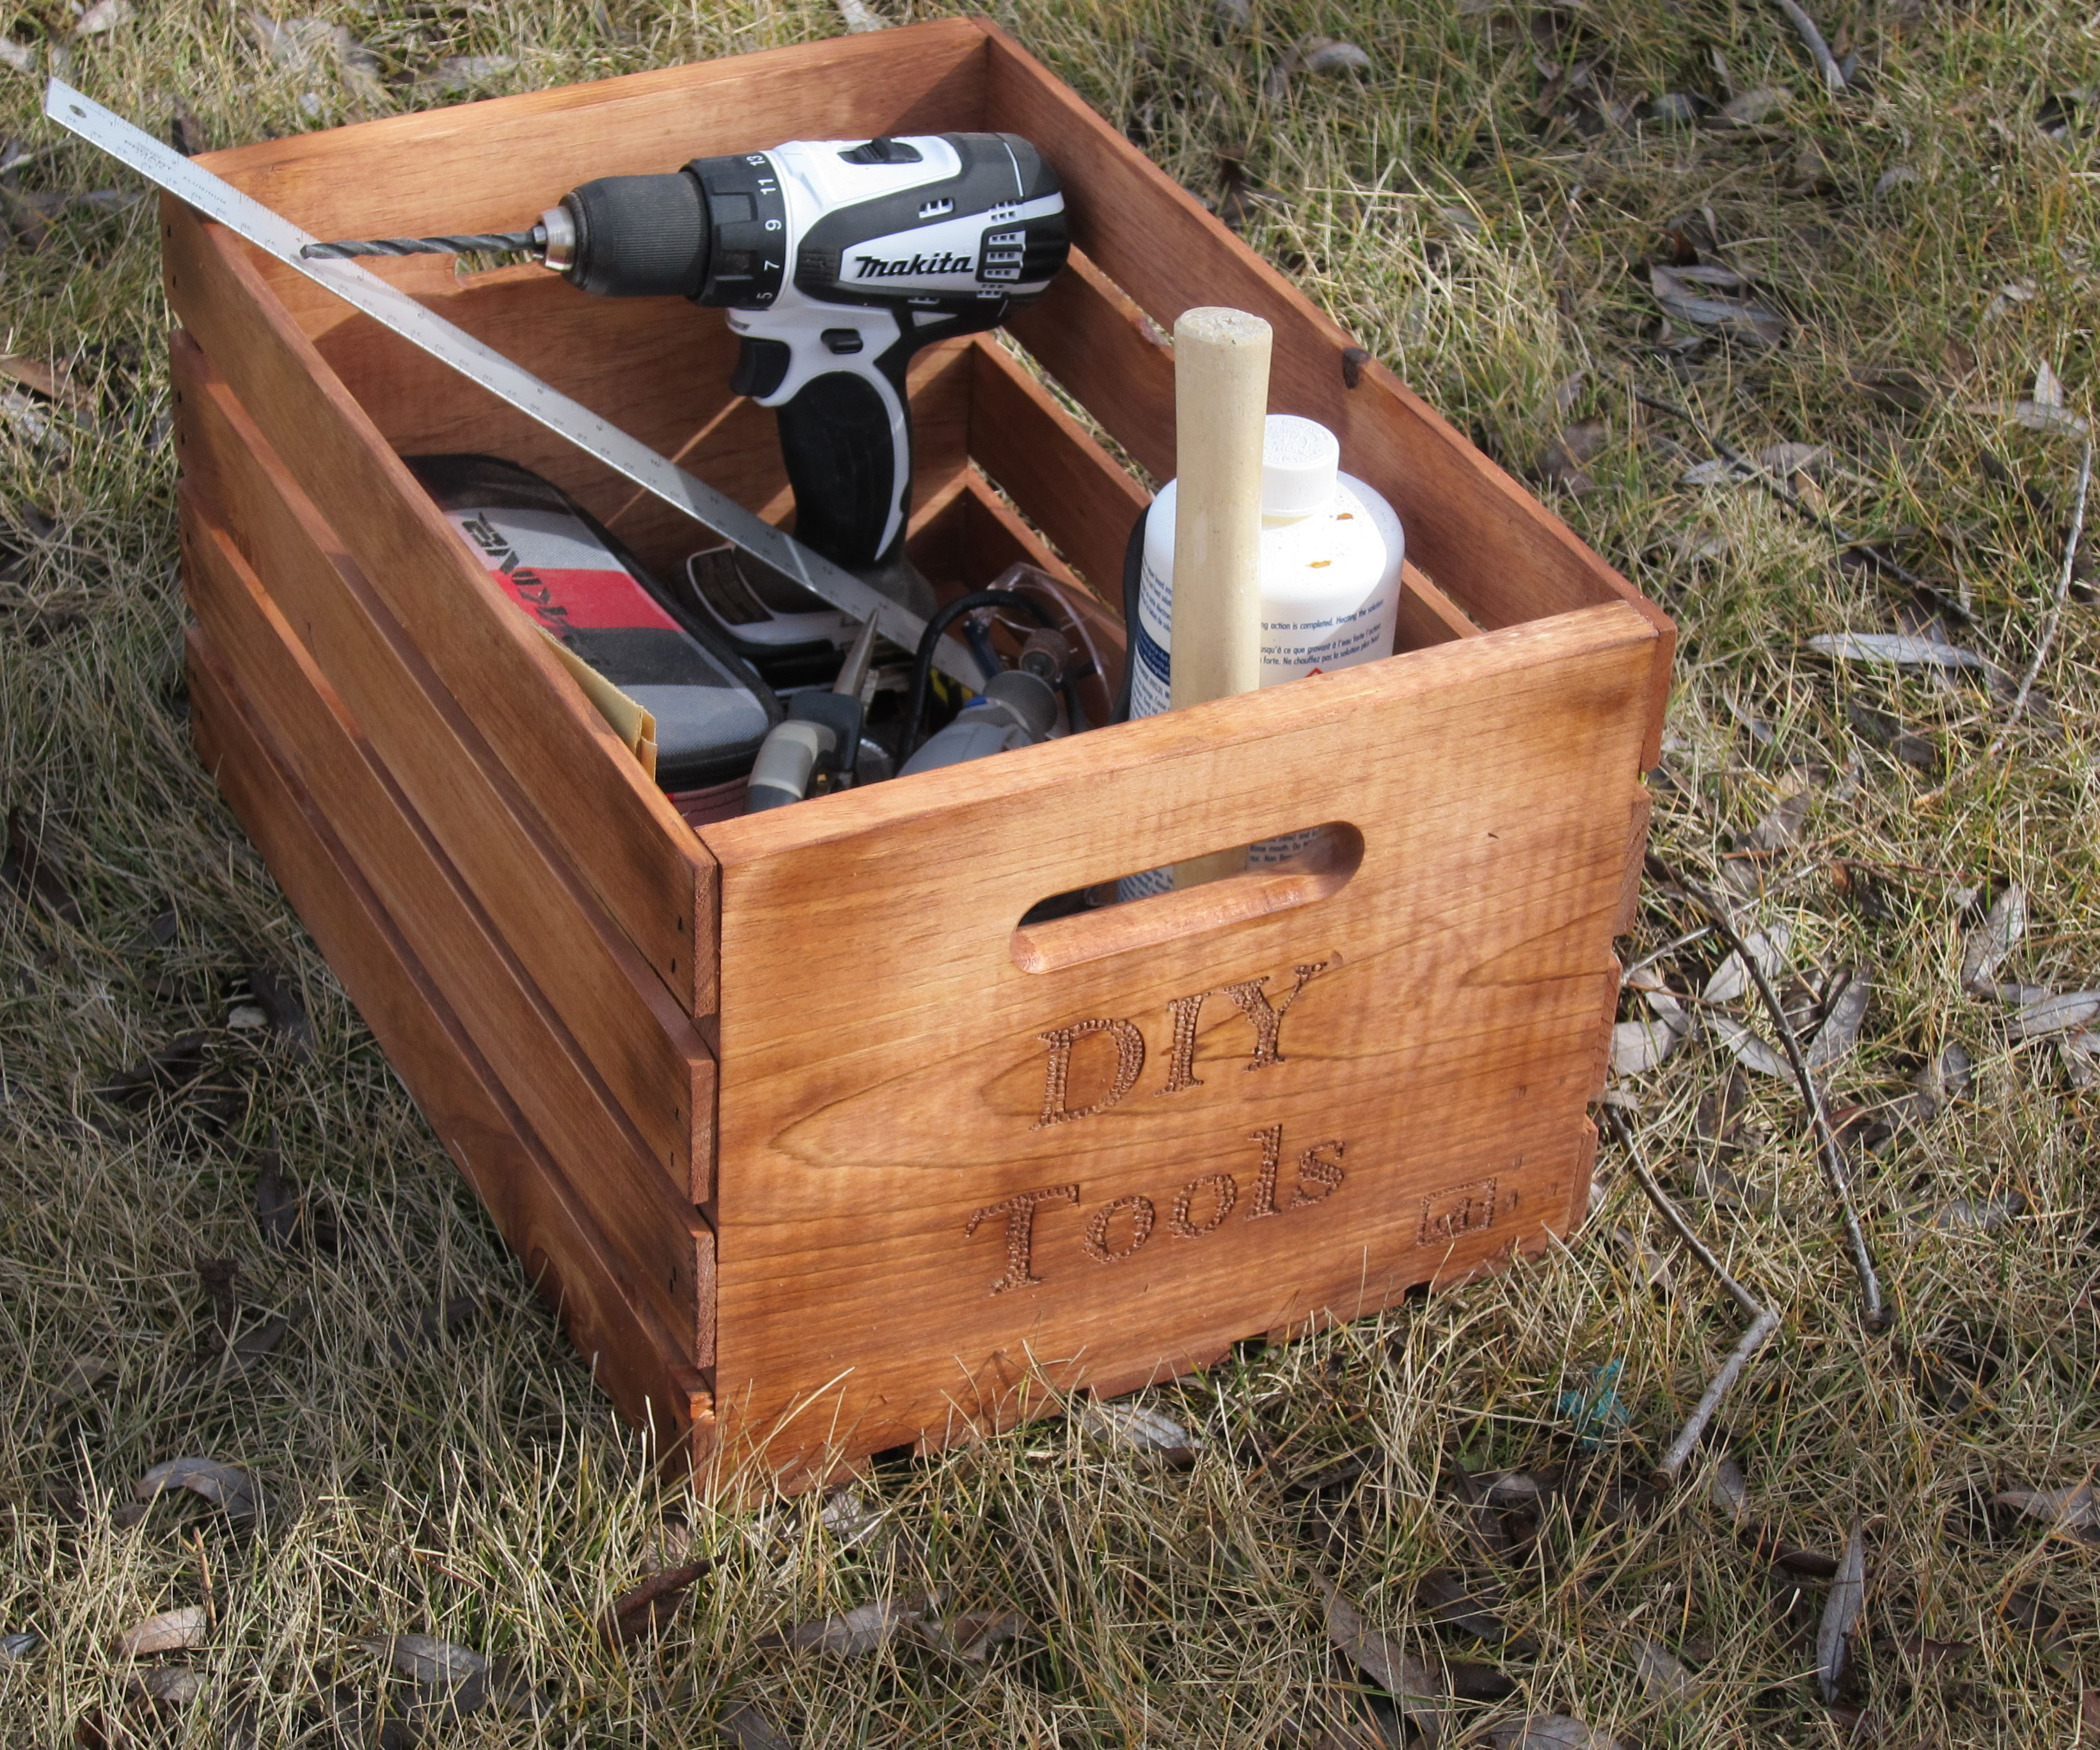 DIY Tools Crate   Wood working and just a fun project